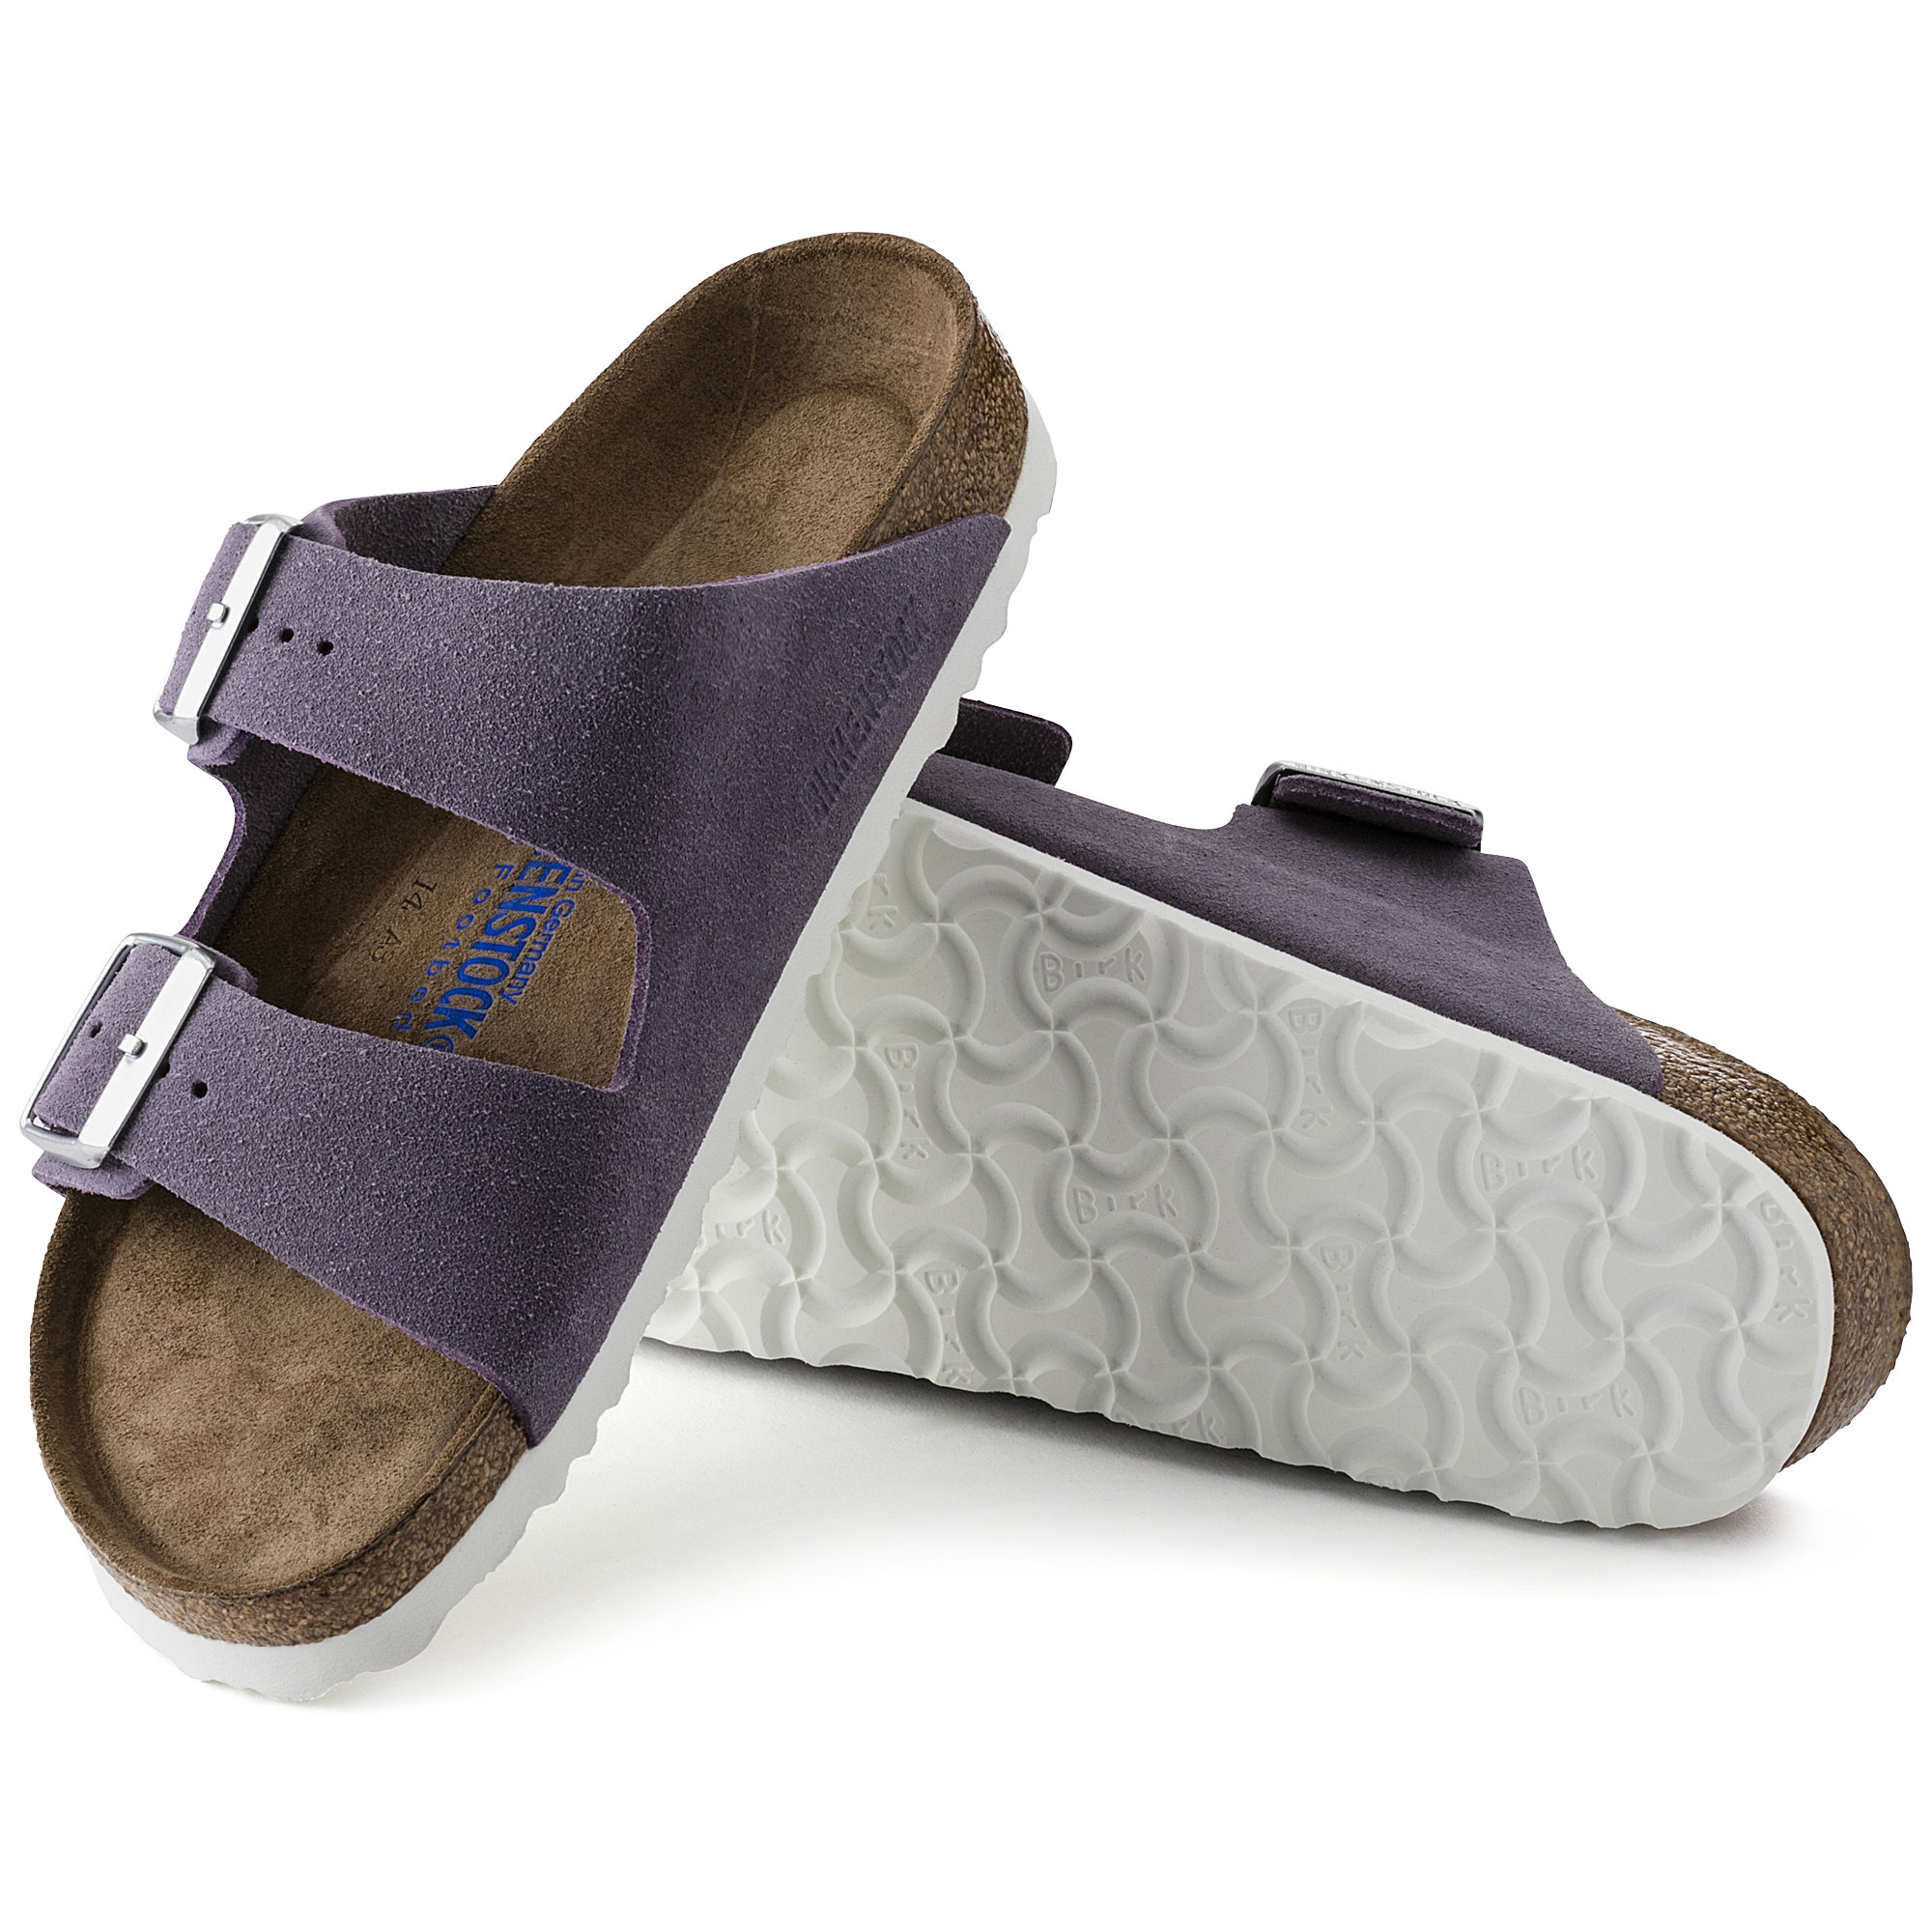 6c8ff1da2 ... Arizona Suede Leather Lavender ...